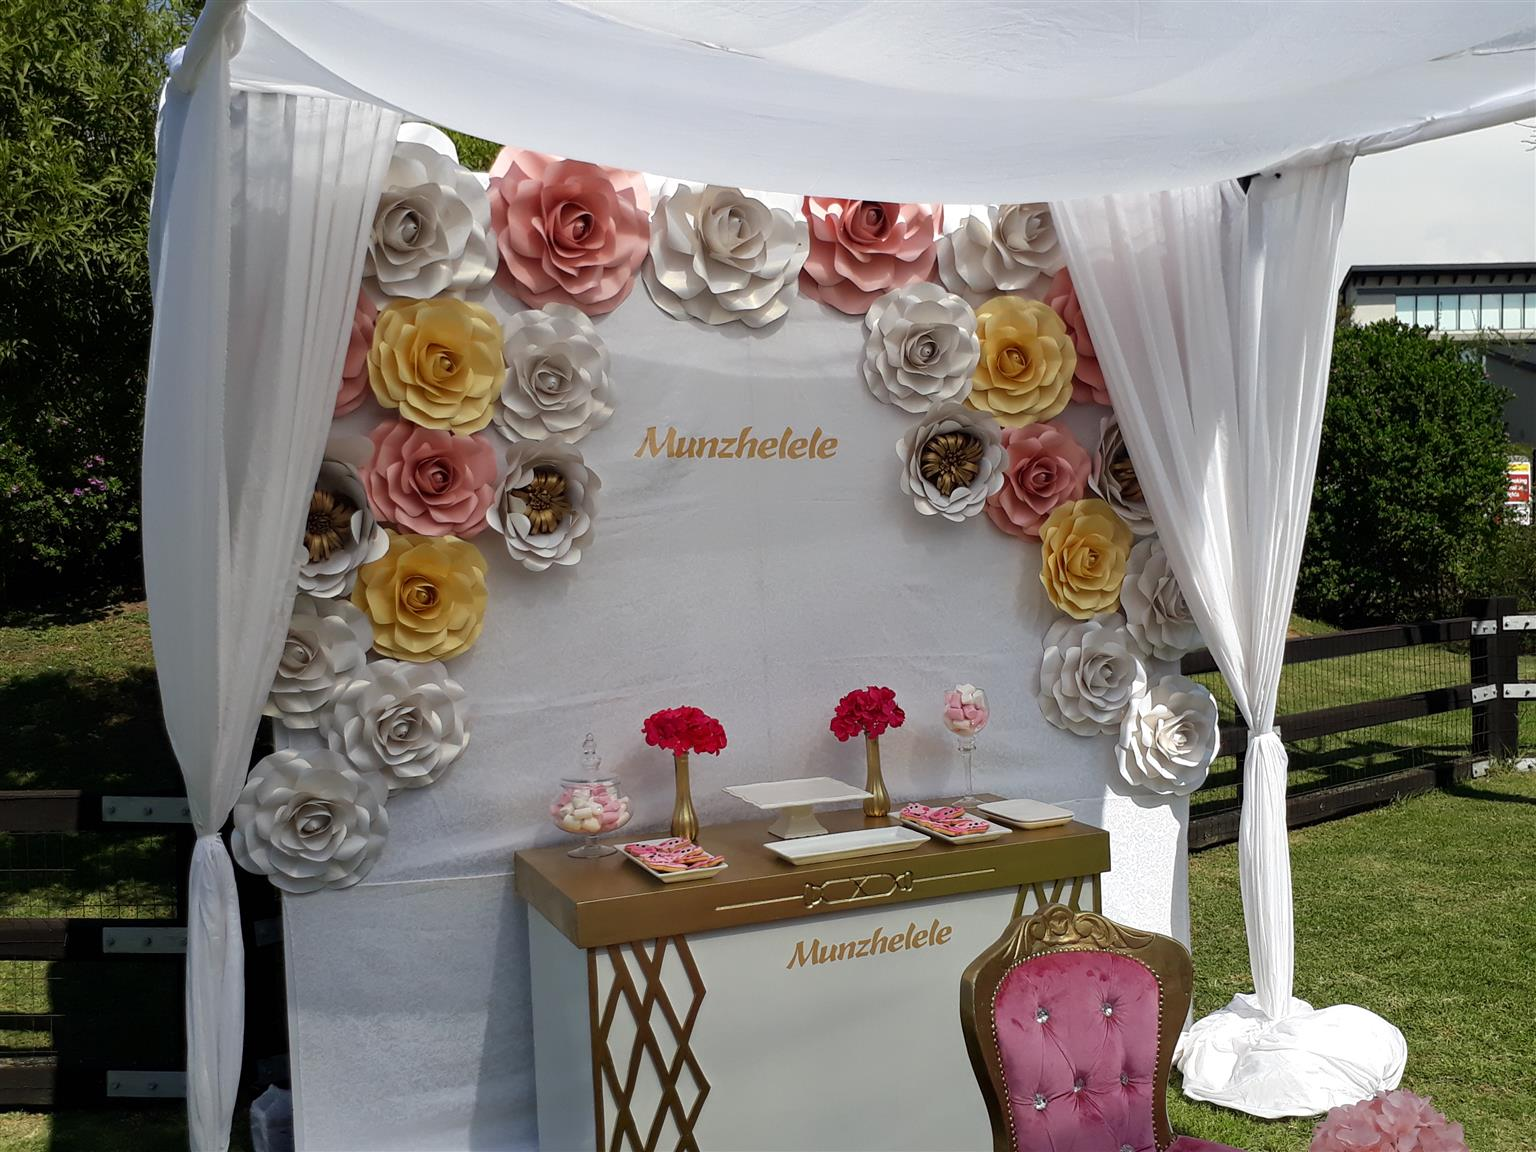 kiddies chair covers for hire cape town devon nz parties paper backdrops flowers sales and